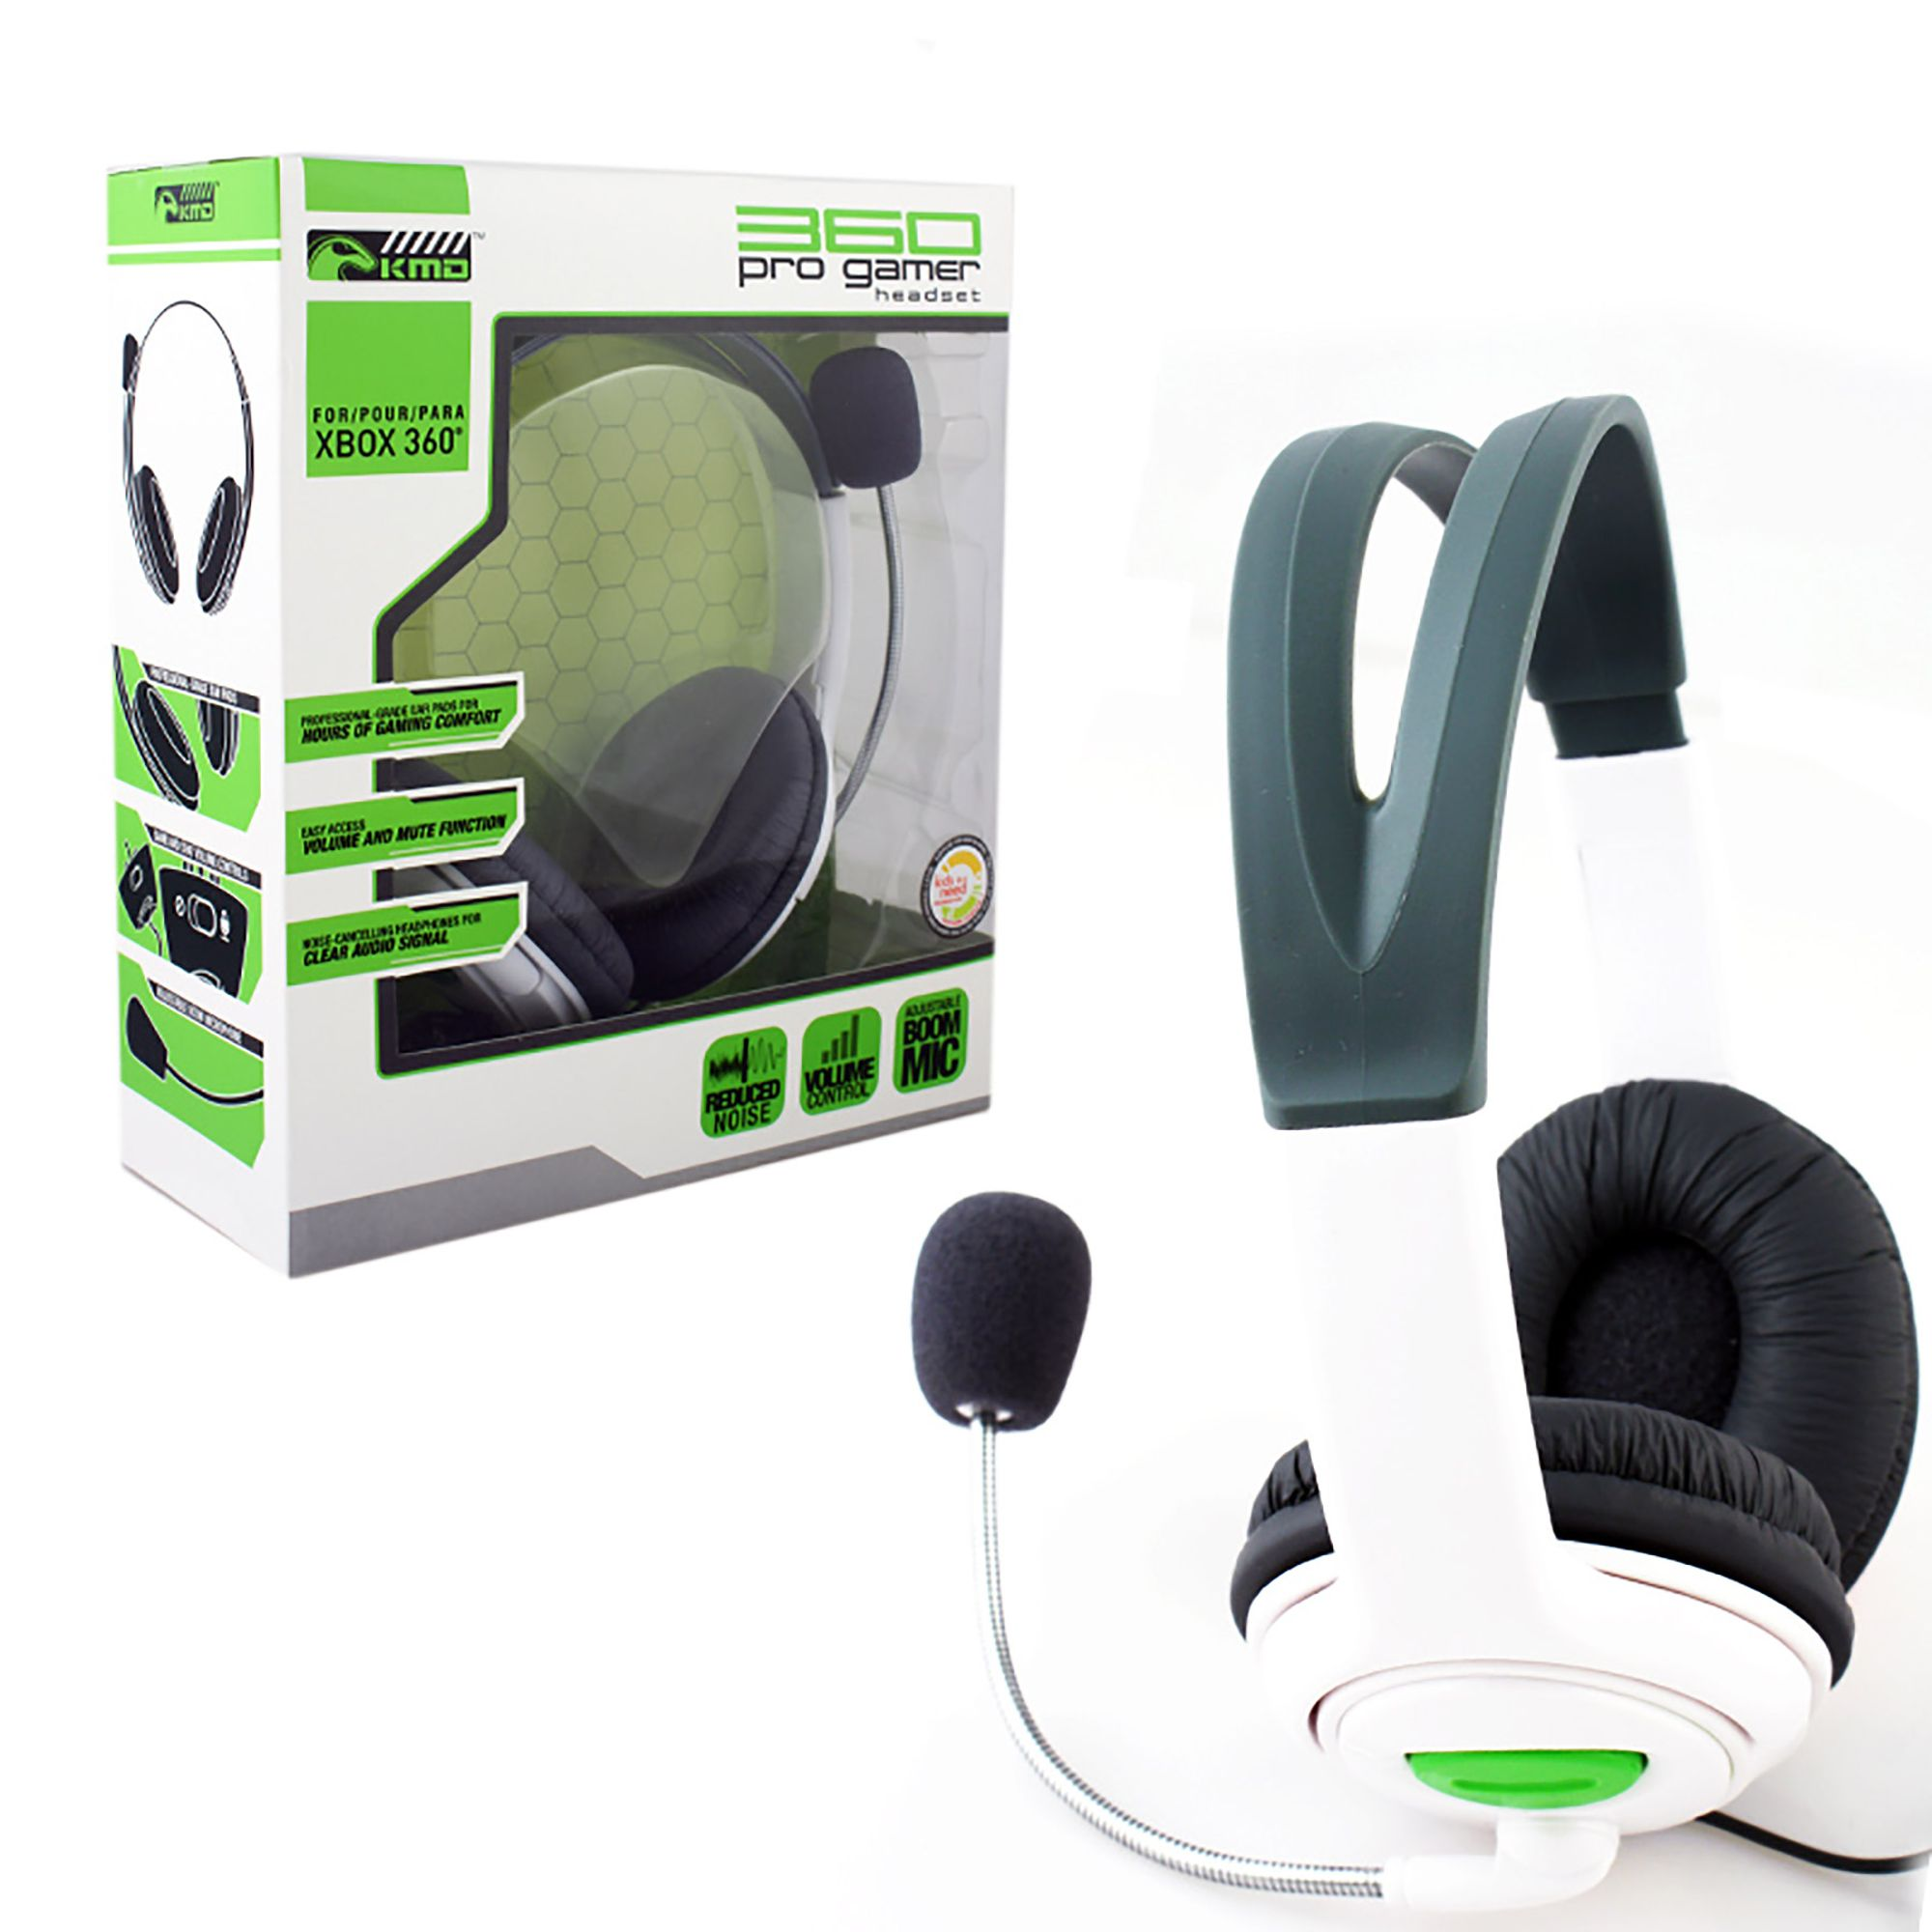 Xbox 360 Headset with Mic Xbox 360 Headphone by KMD Live Chat Headset With microphone For Microsoft Xbox 360 White Large